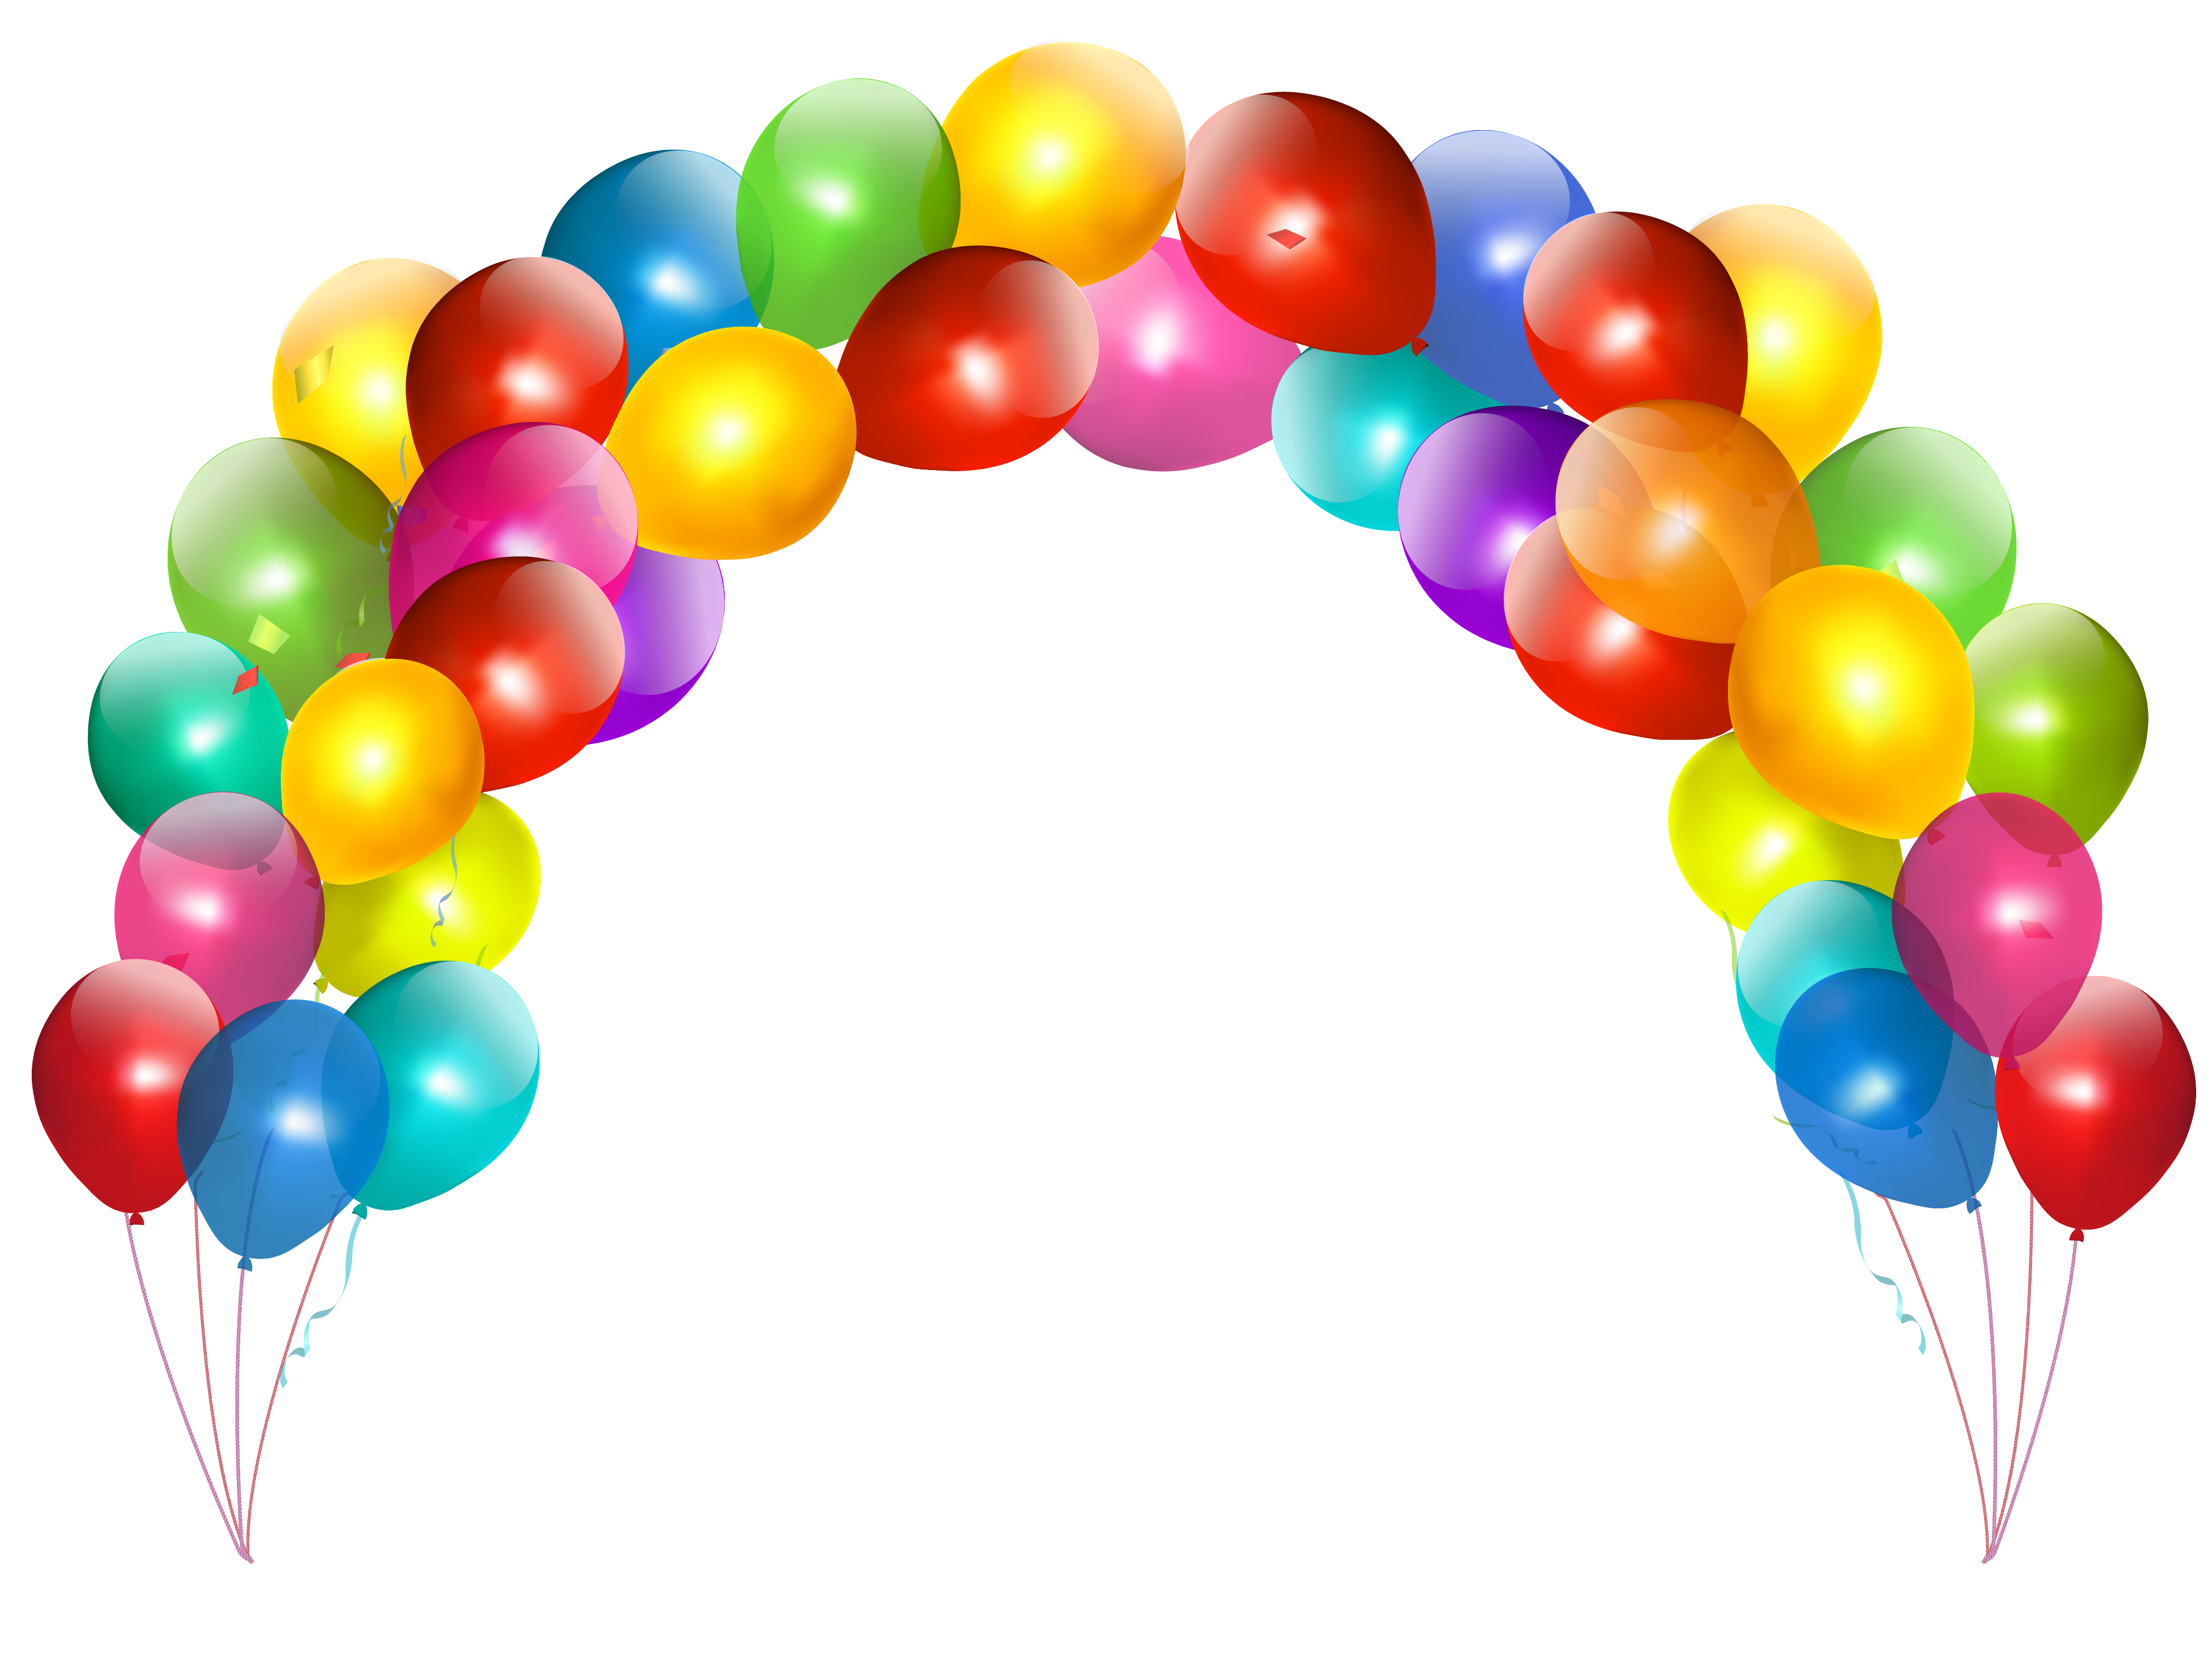 Arch cliparts - Baloon Clip Art